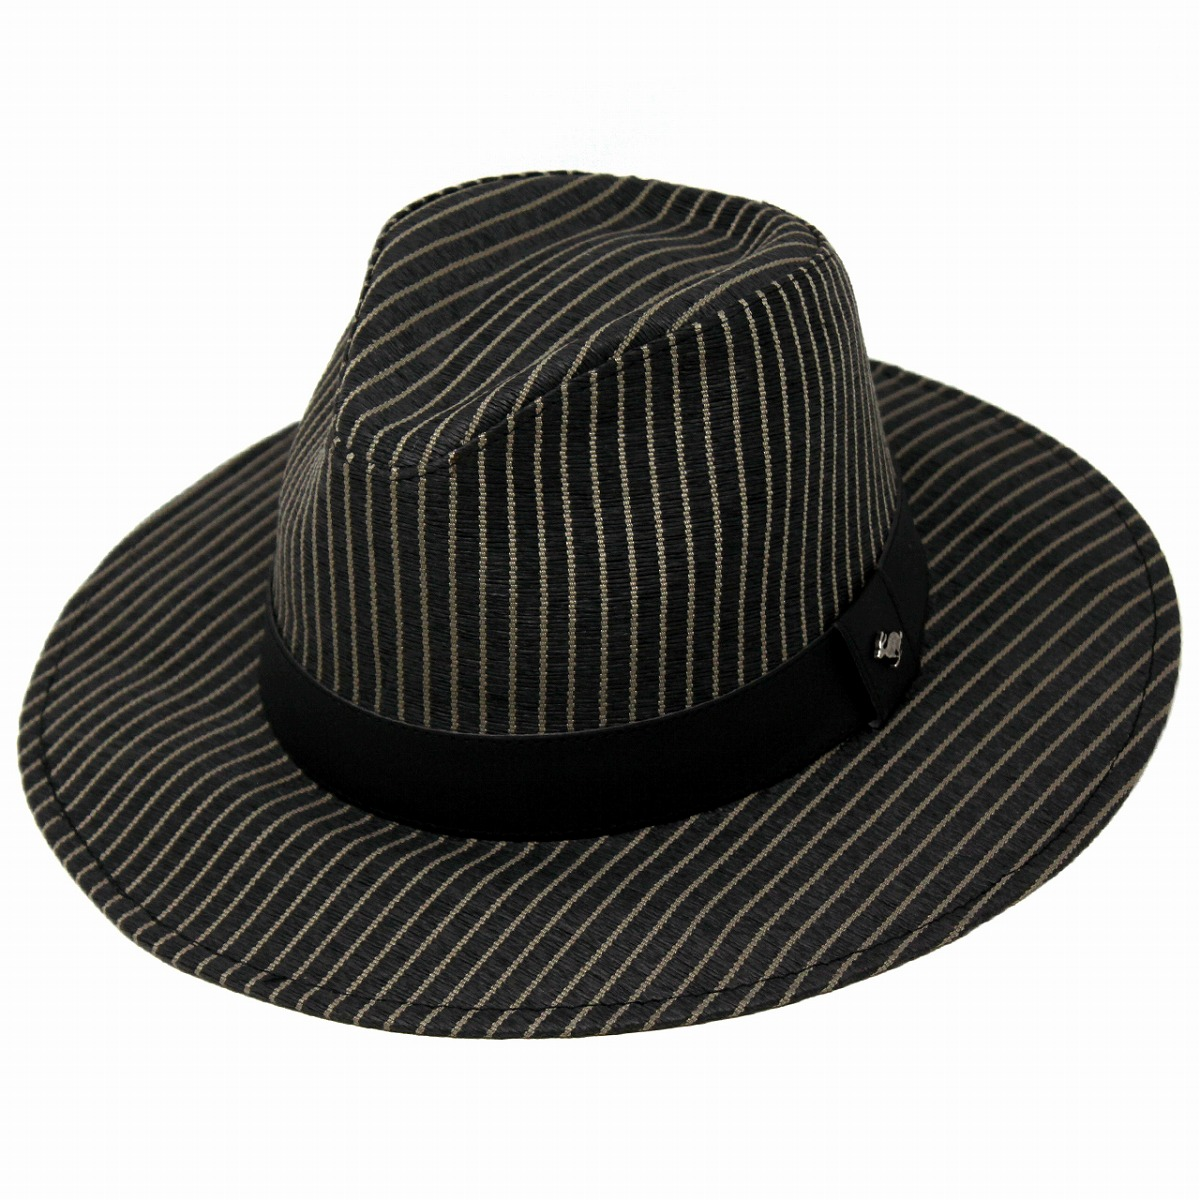 eaa9c737d84 Straw hat Lady s UV cut straw hat   black black  wide-brim hat  with hat men  soft felt hat petergrimm hat Peter Grimm broad-brimmed hat ultraviolet rays  ...